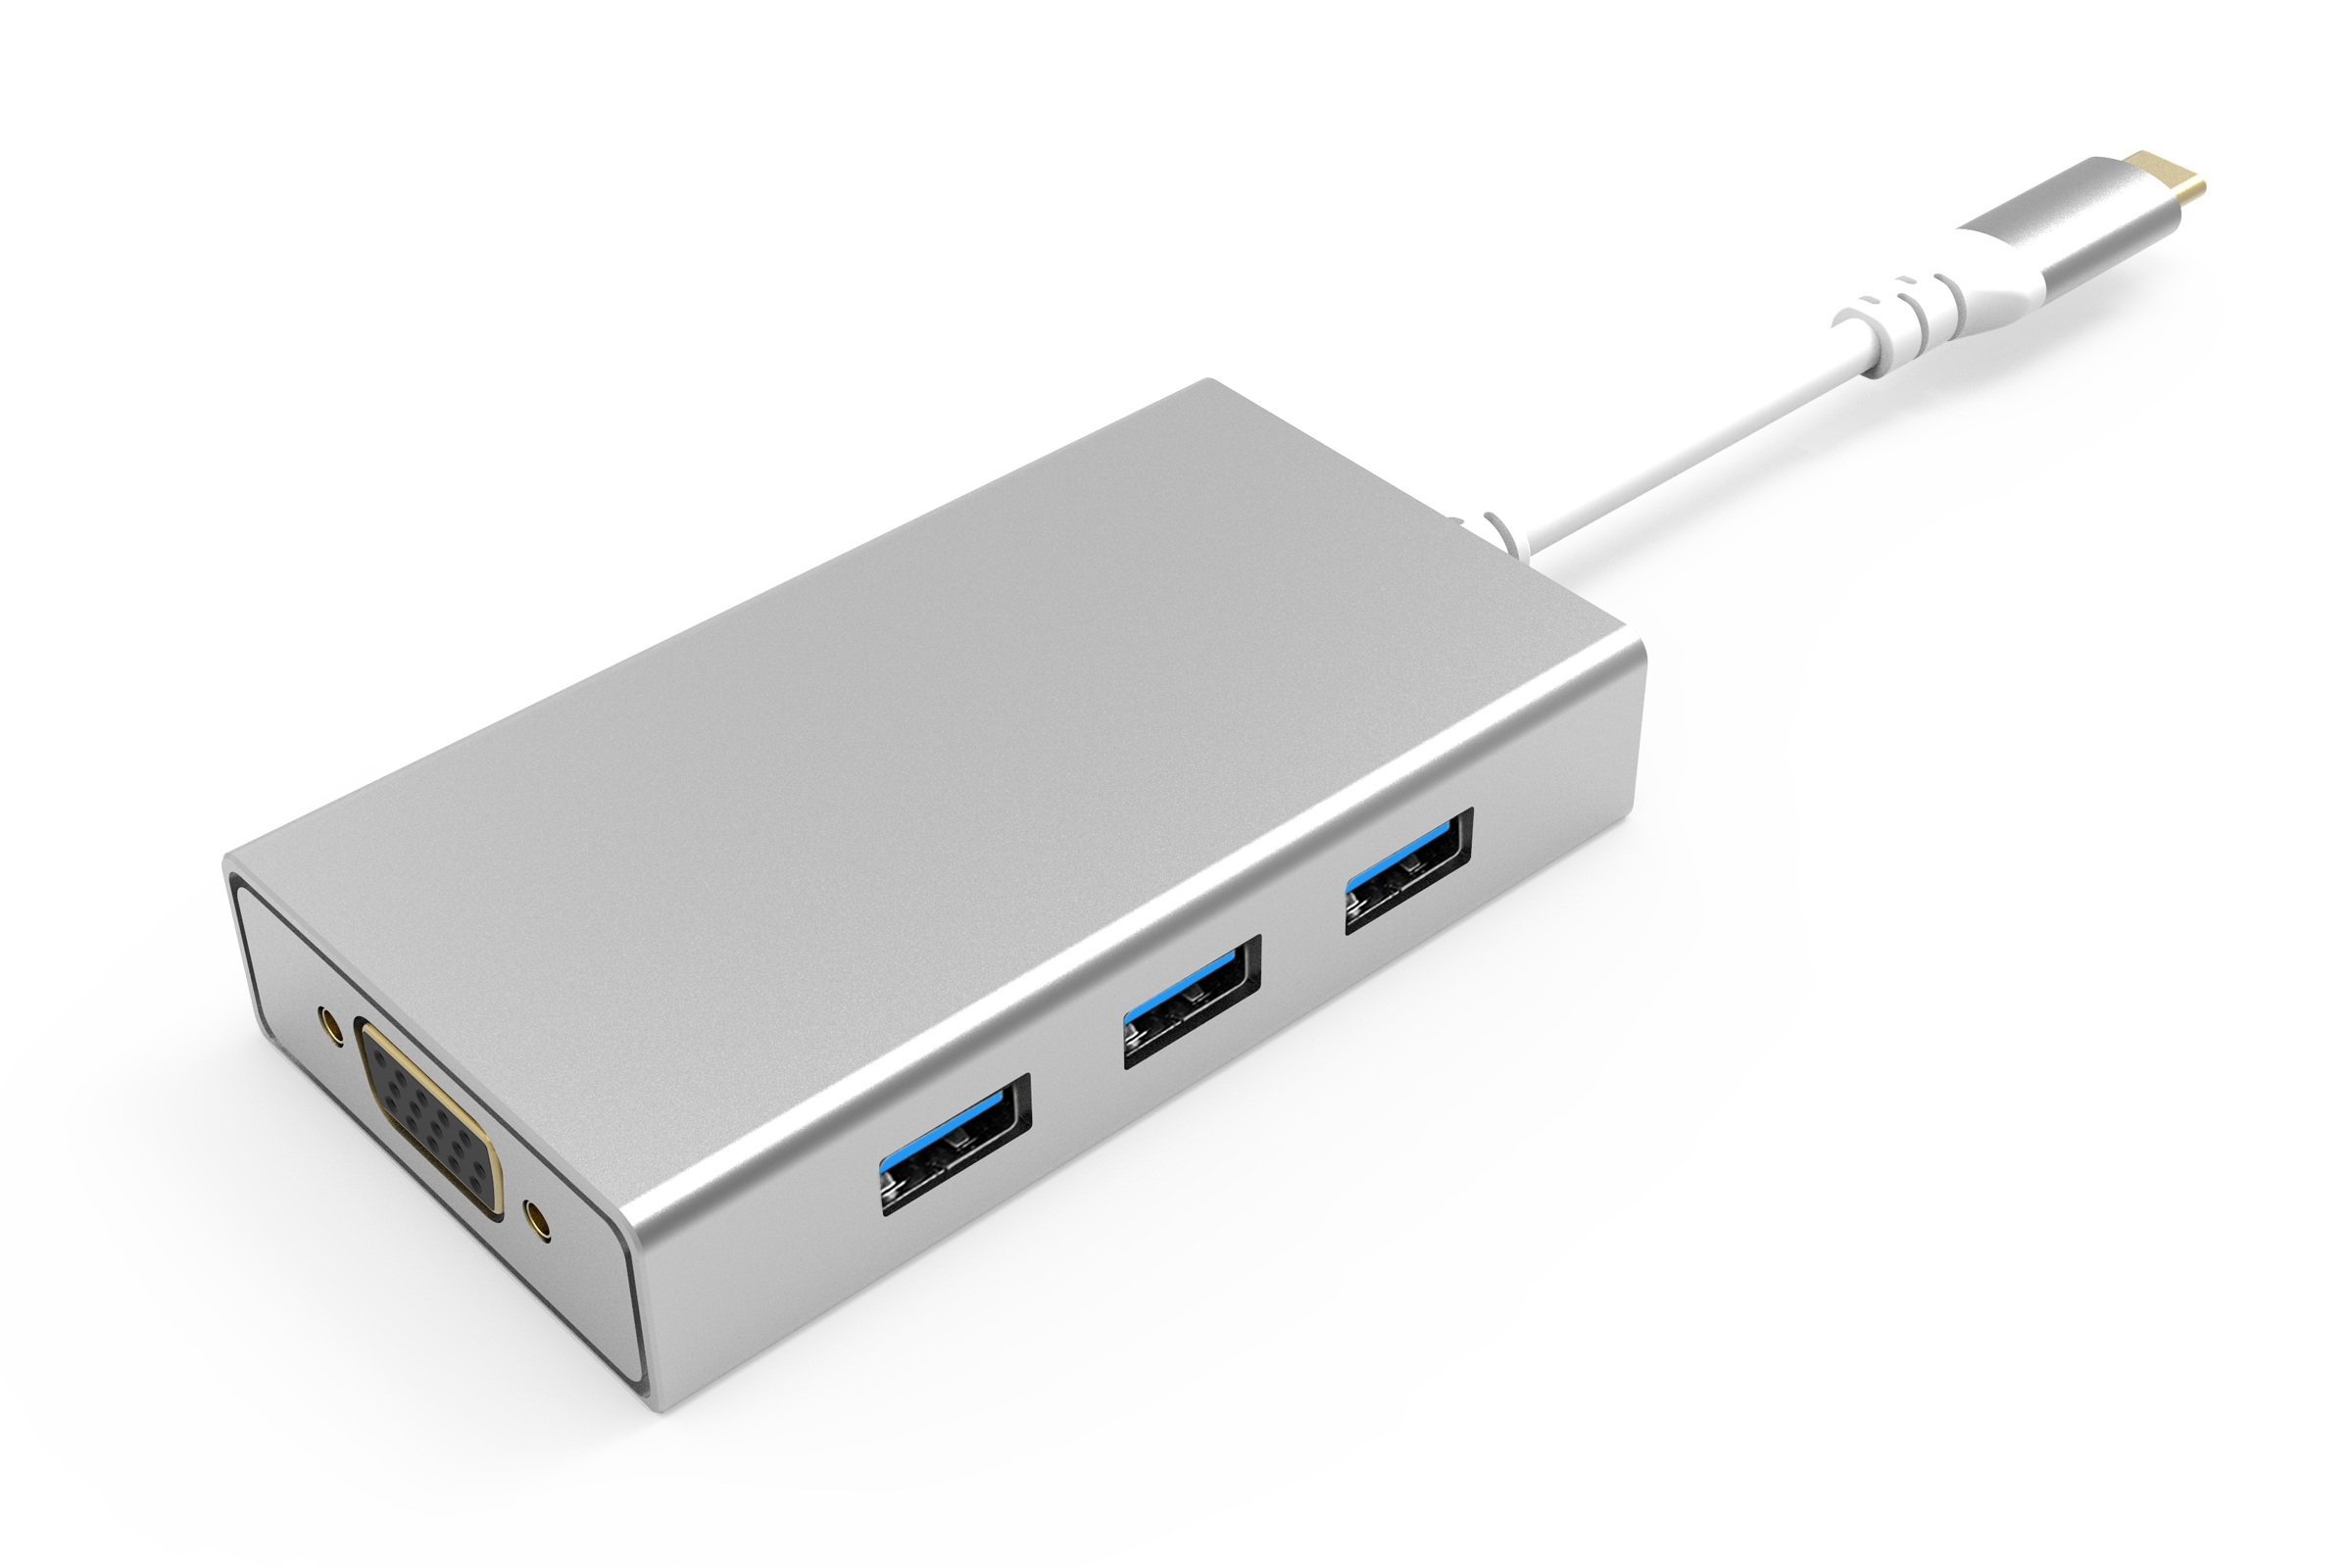 UC1602 8 Ports USB-C Hub Dual Display HDMI + VGA